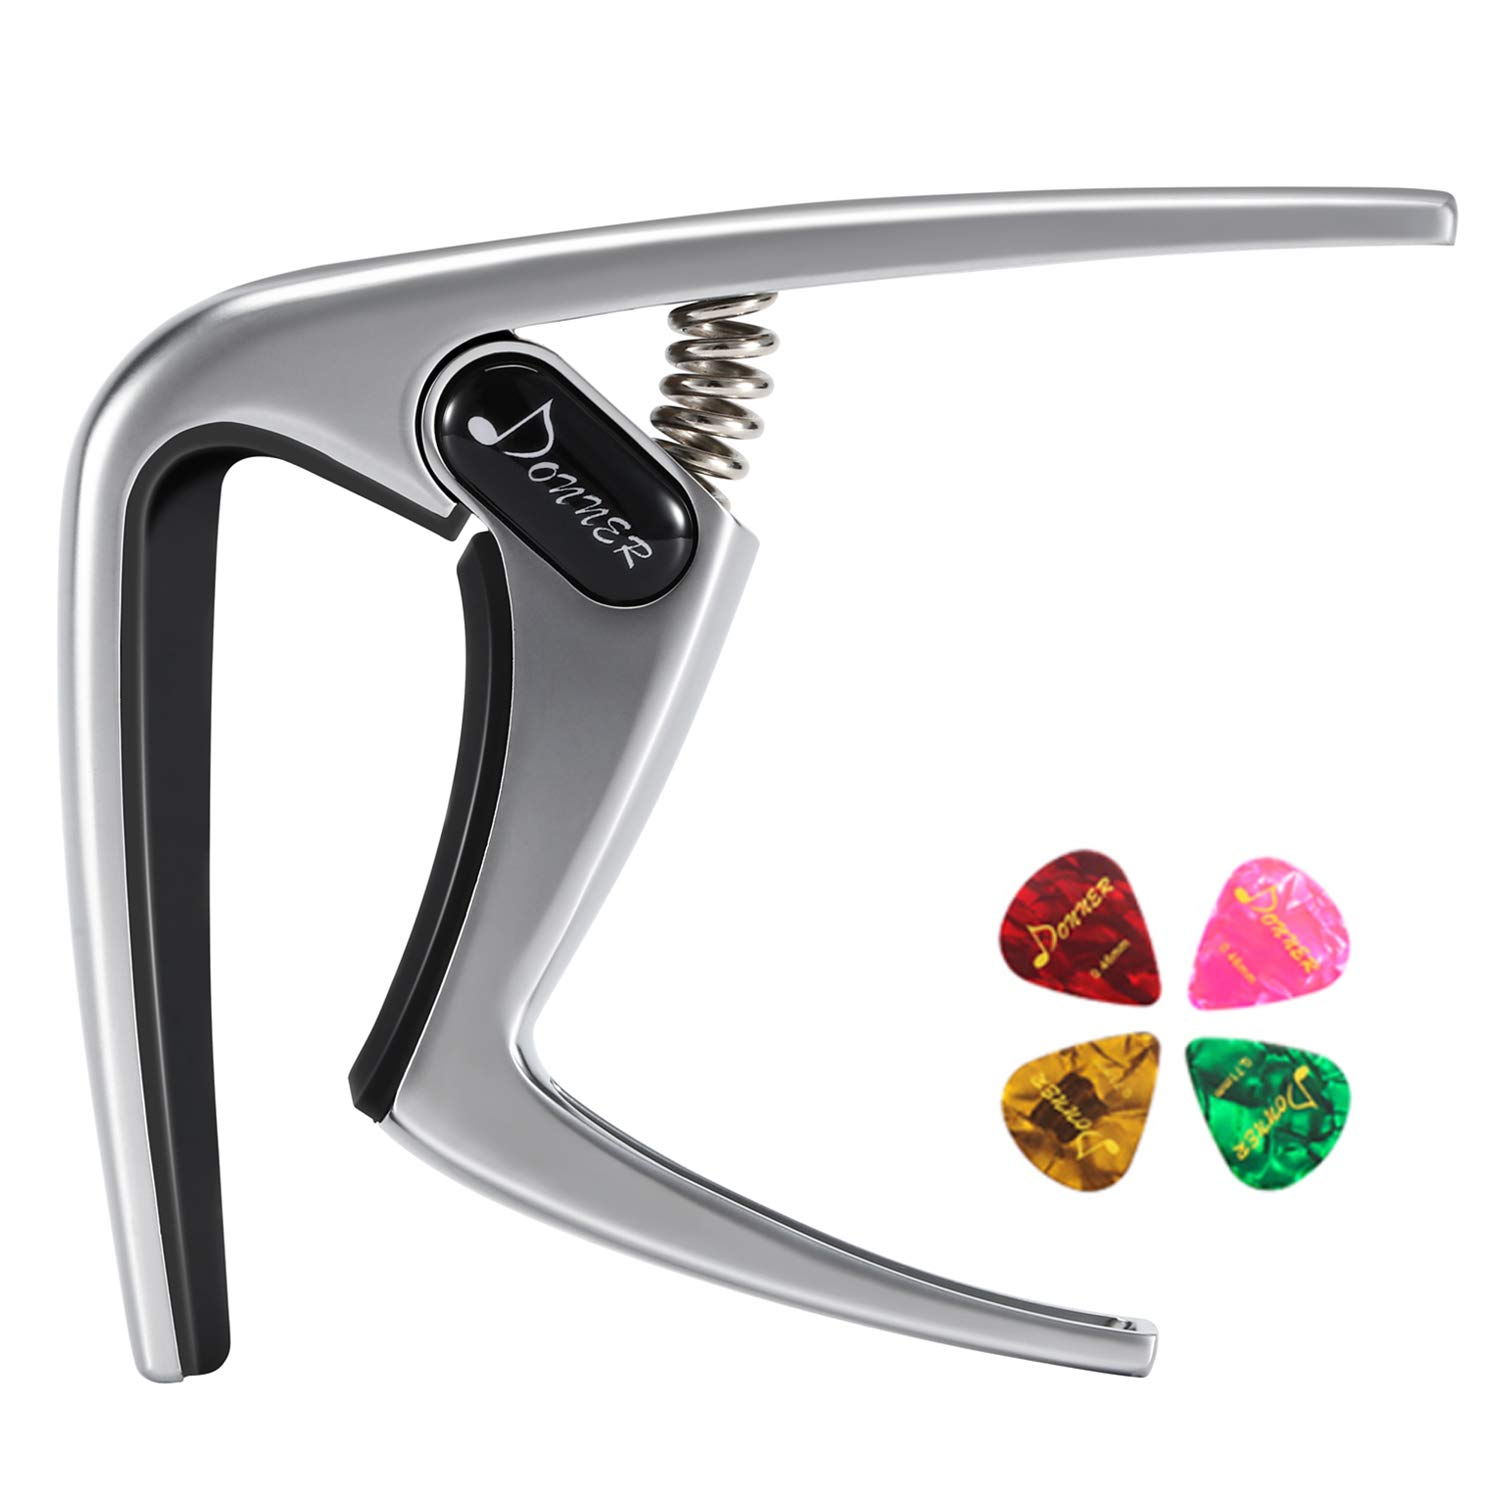 Donner DC-2 One Handed Alloy Guitar Capo for Guitar Ukulele Banjo Golden Color DC-2 Golden